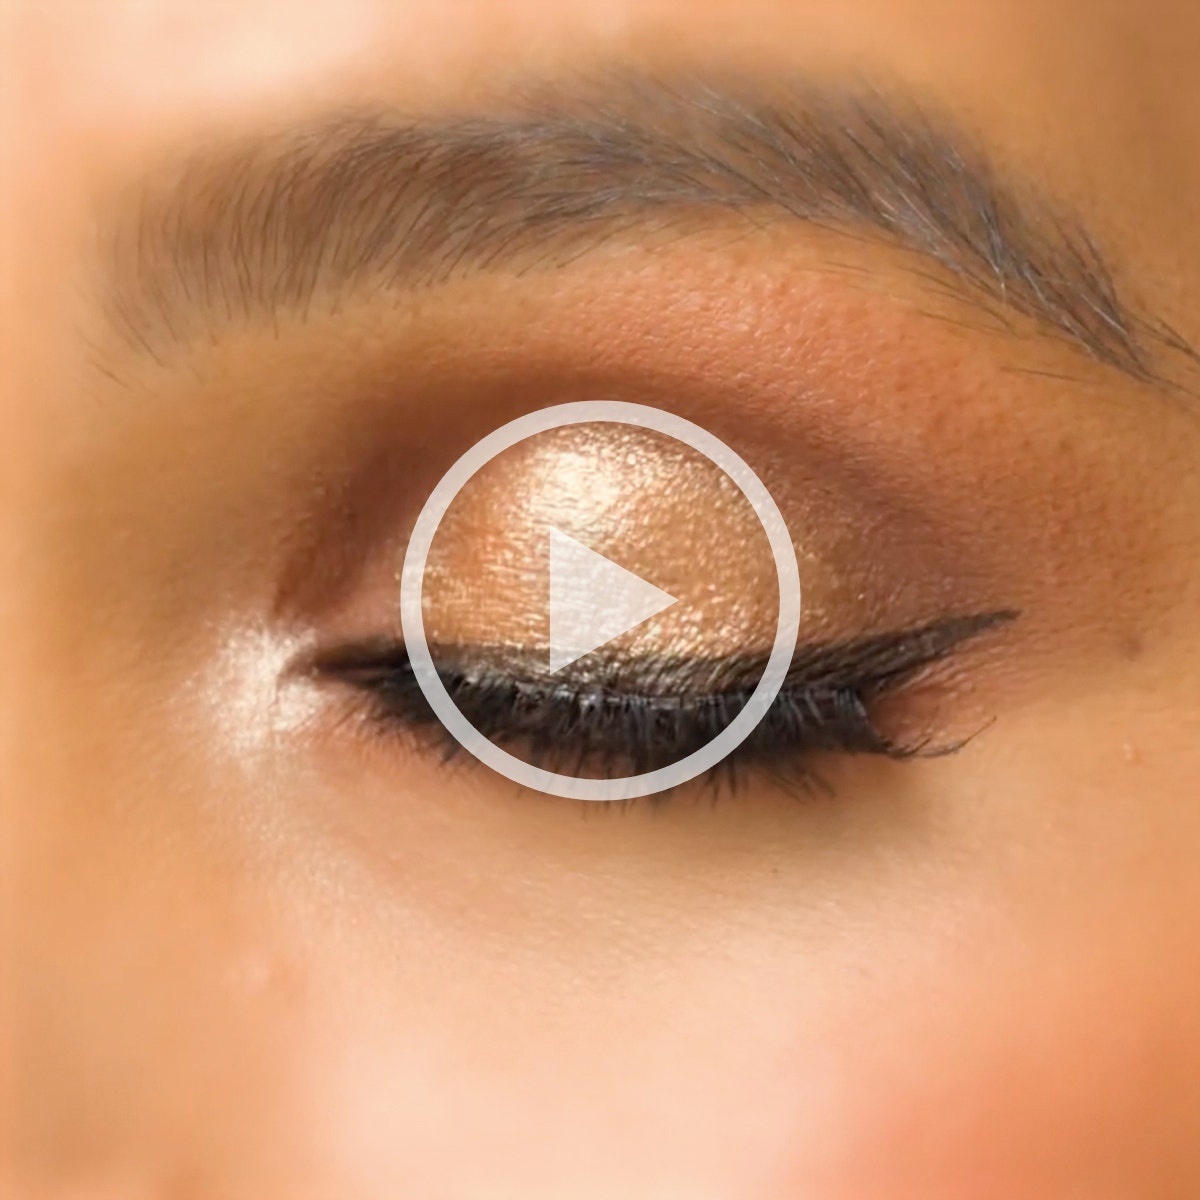 LORAC | Video of shadow being applied with a still image of closed eye after shadow is applied to it | Press to Play video